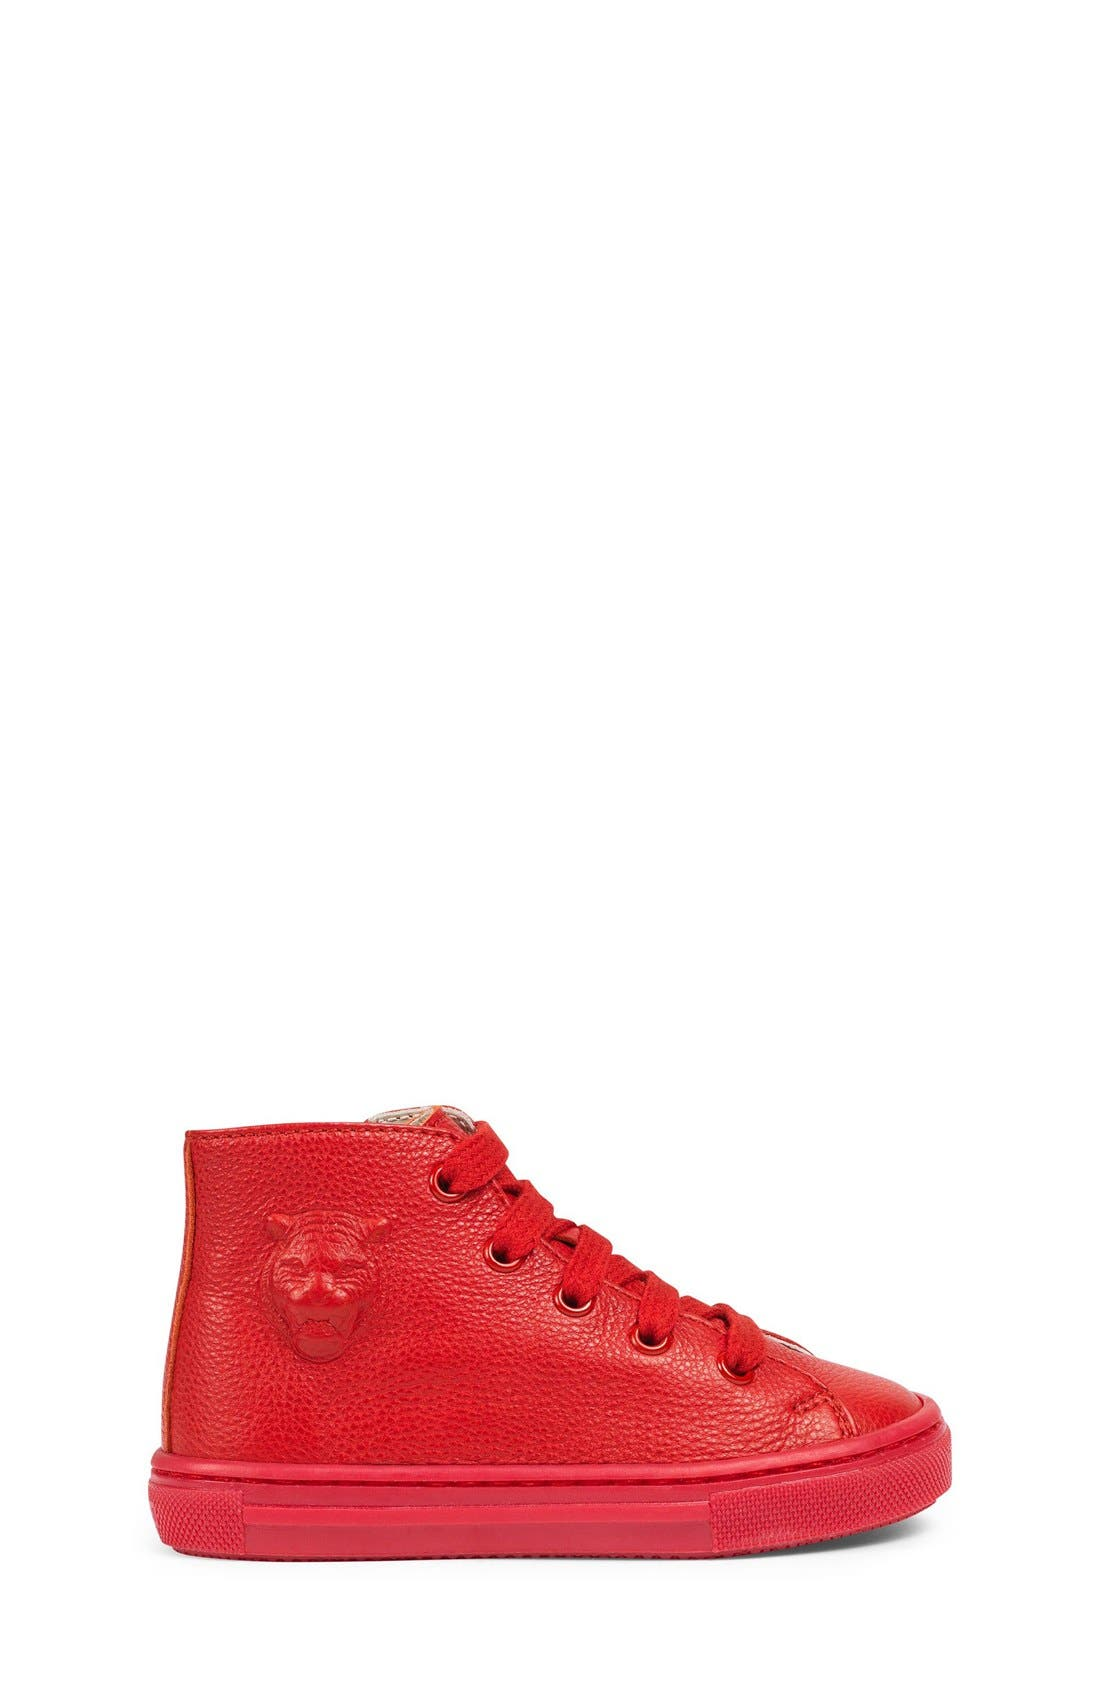 Major High Top Sneaker,                             Alternate thumbnail 4, color,                             Red Leather